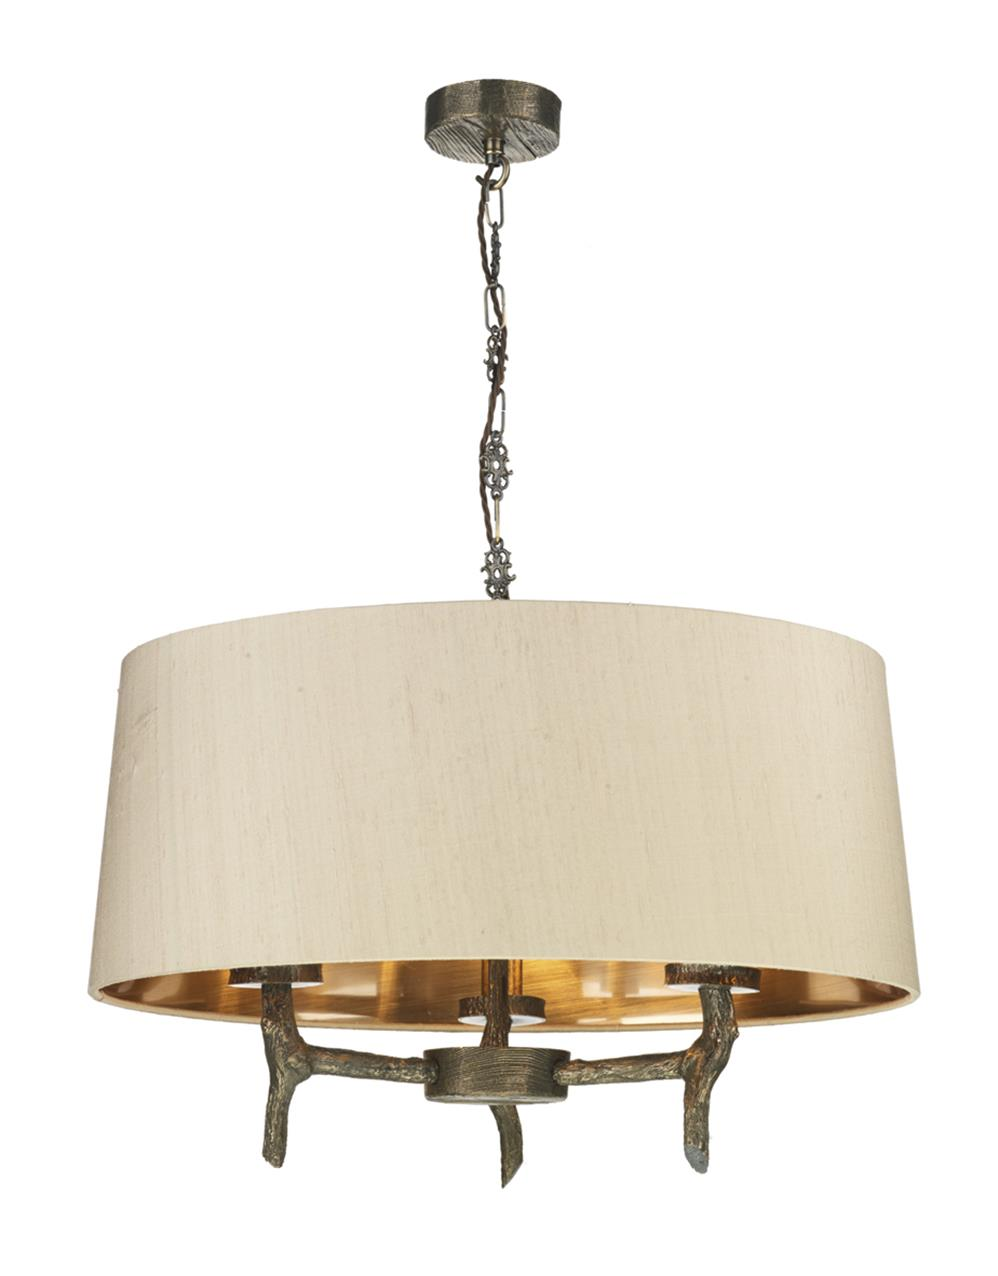 David Hunt Lighting JOS5301 Joshua 3 Light Pendant in Bronze withTaupe shades